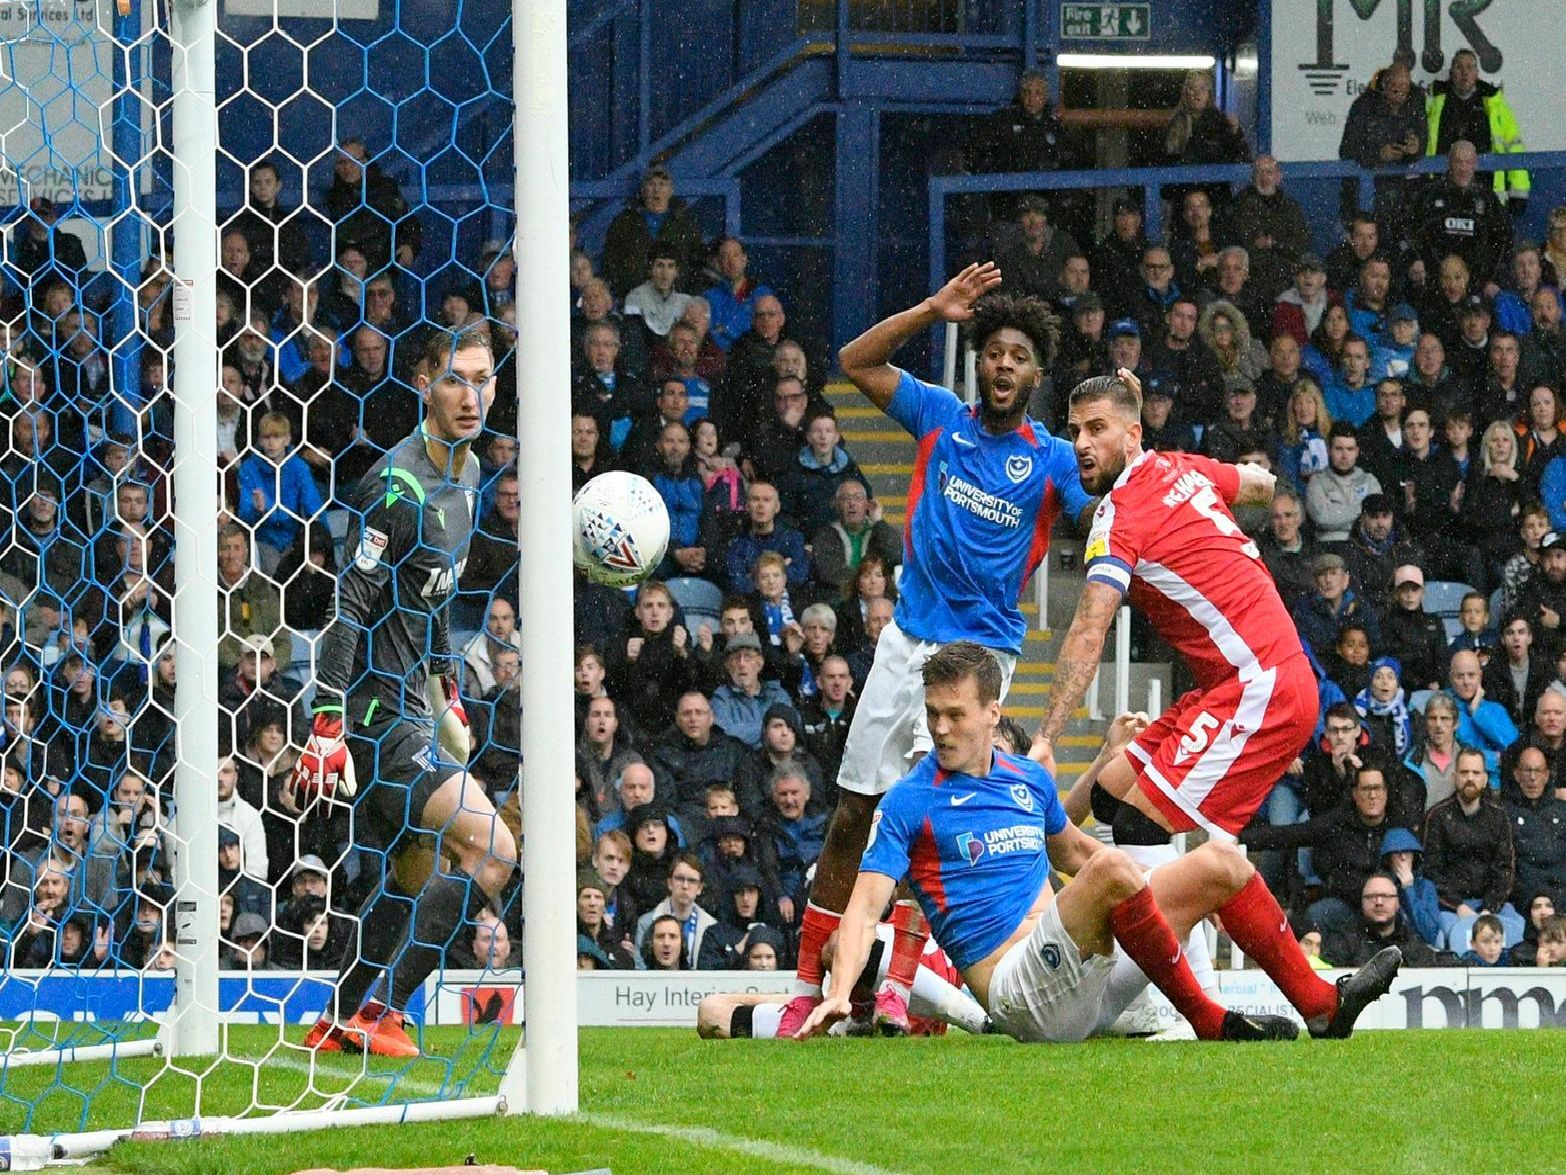 Pompey's agony as Sean Raggett's attempt on goal hits the post